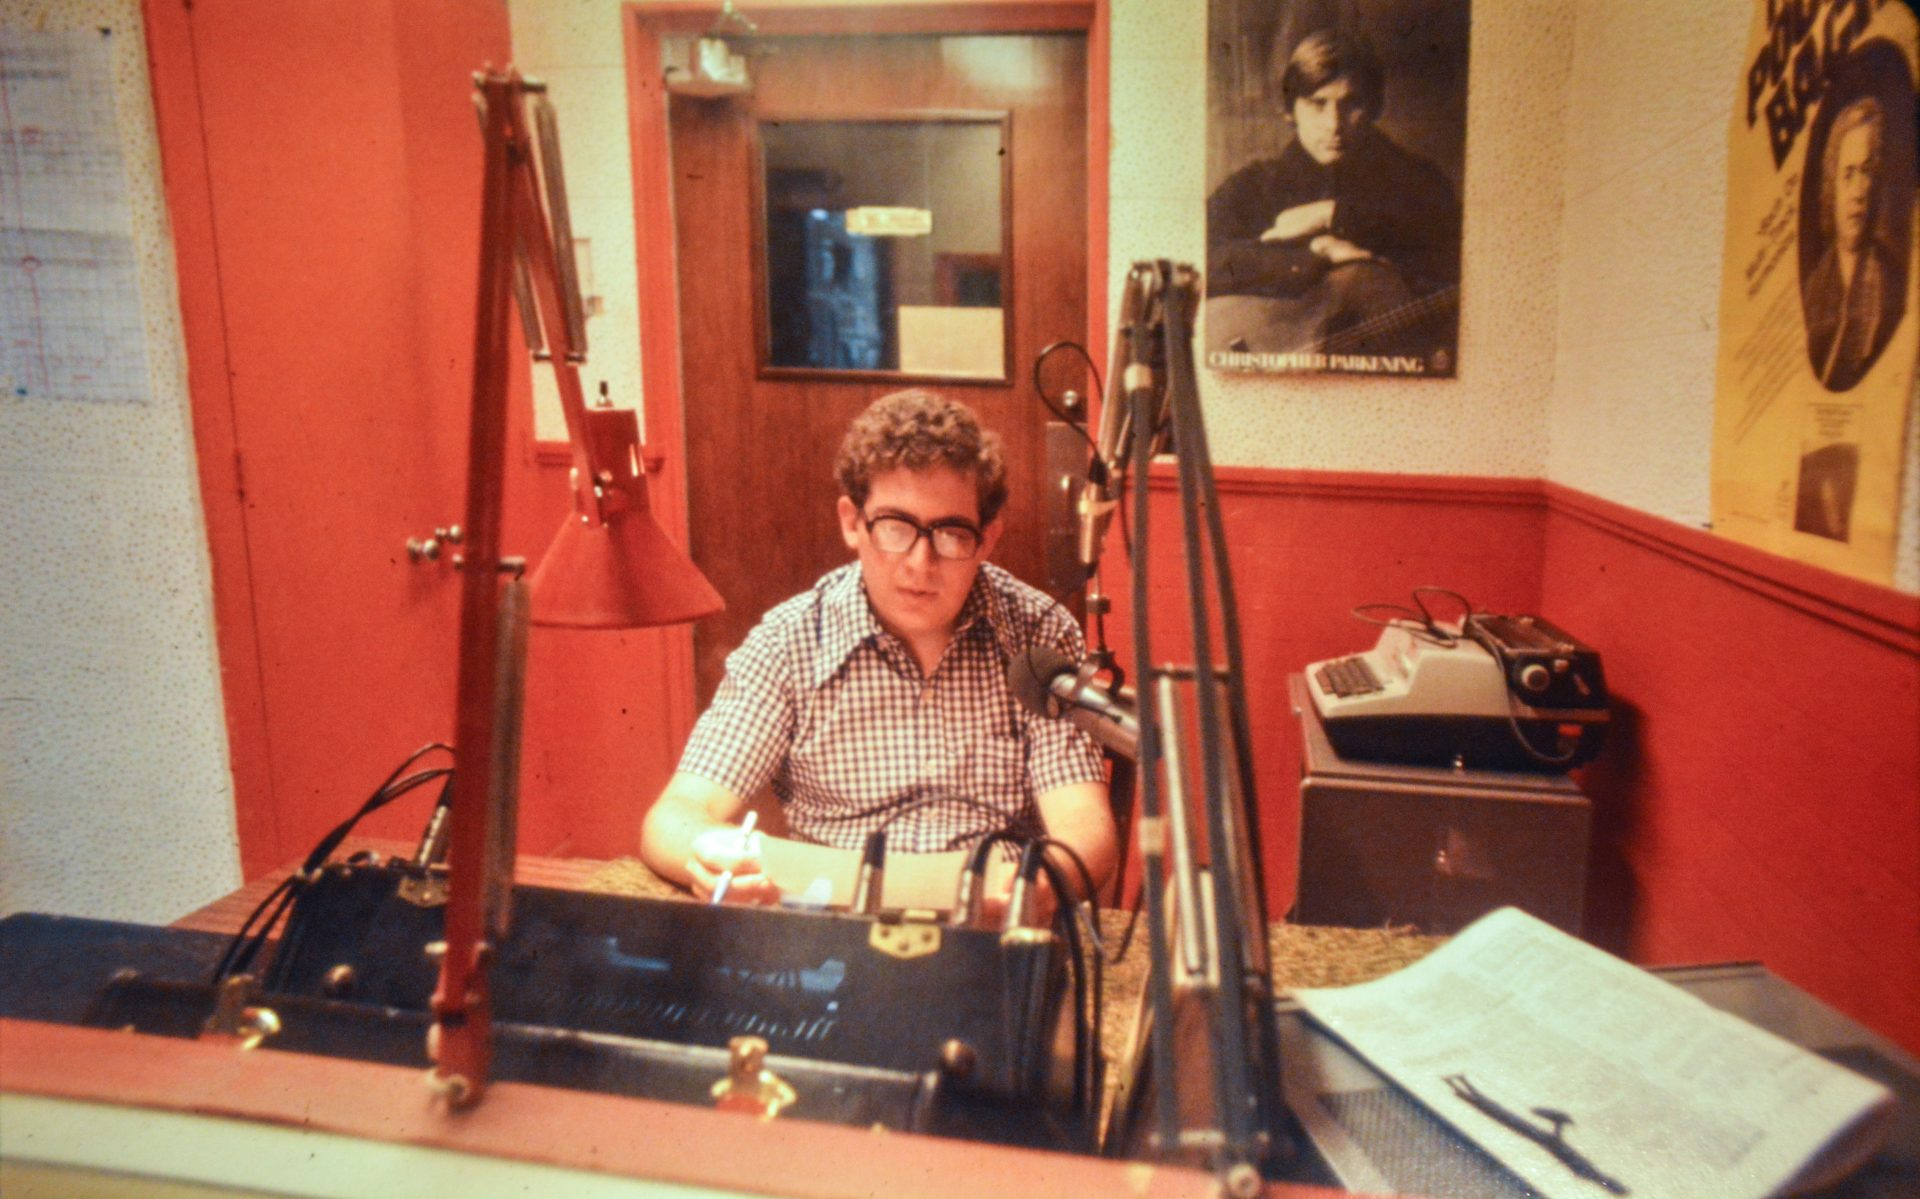 An unidentified WITF employee in the mix-down room in the Hershey building. Suspected pre-1978.